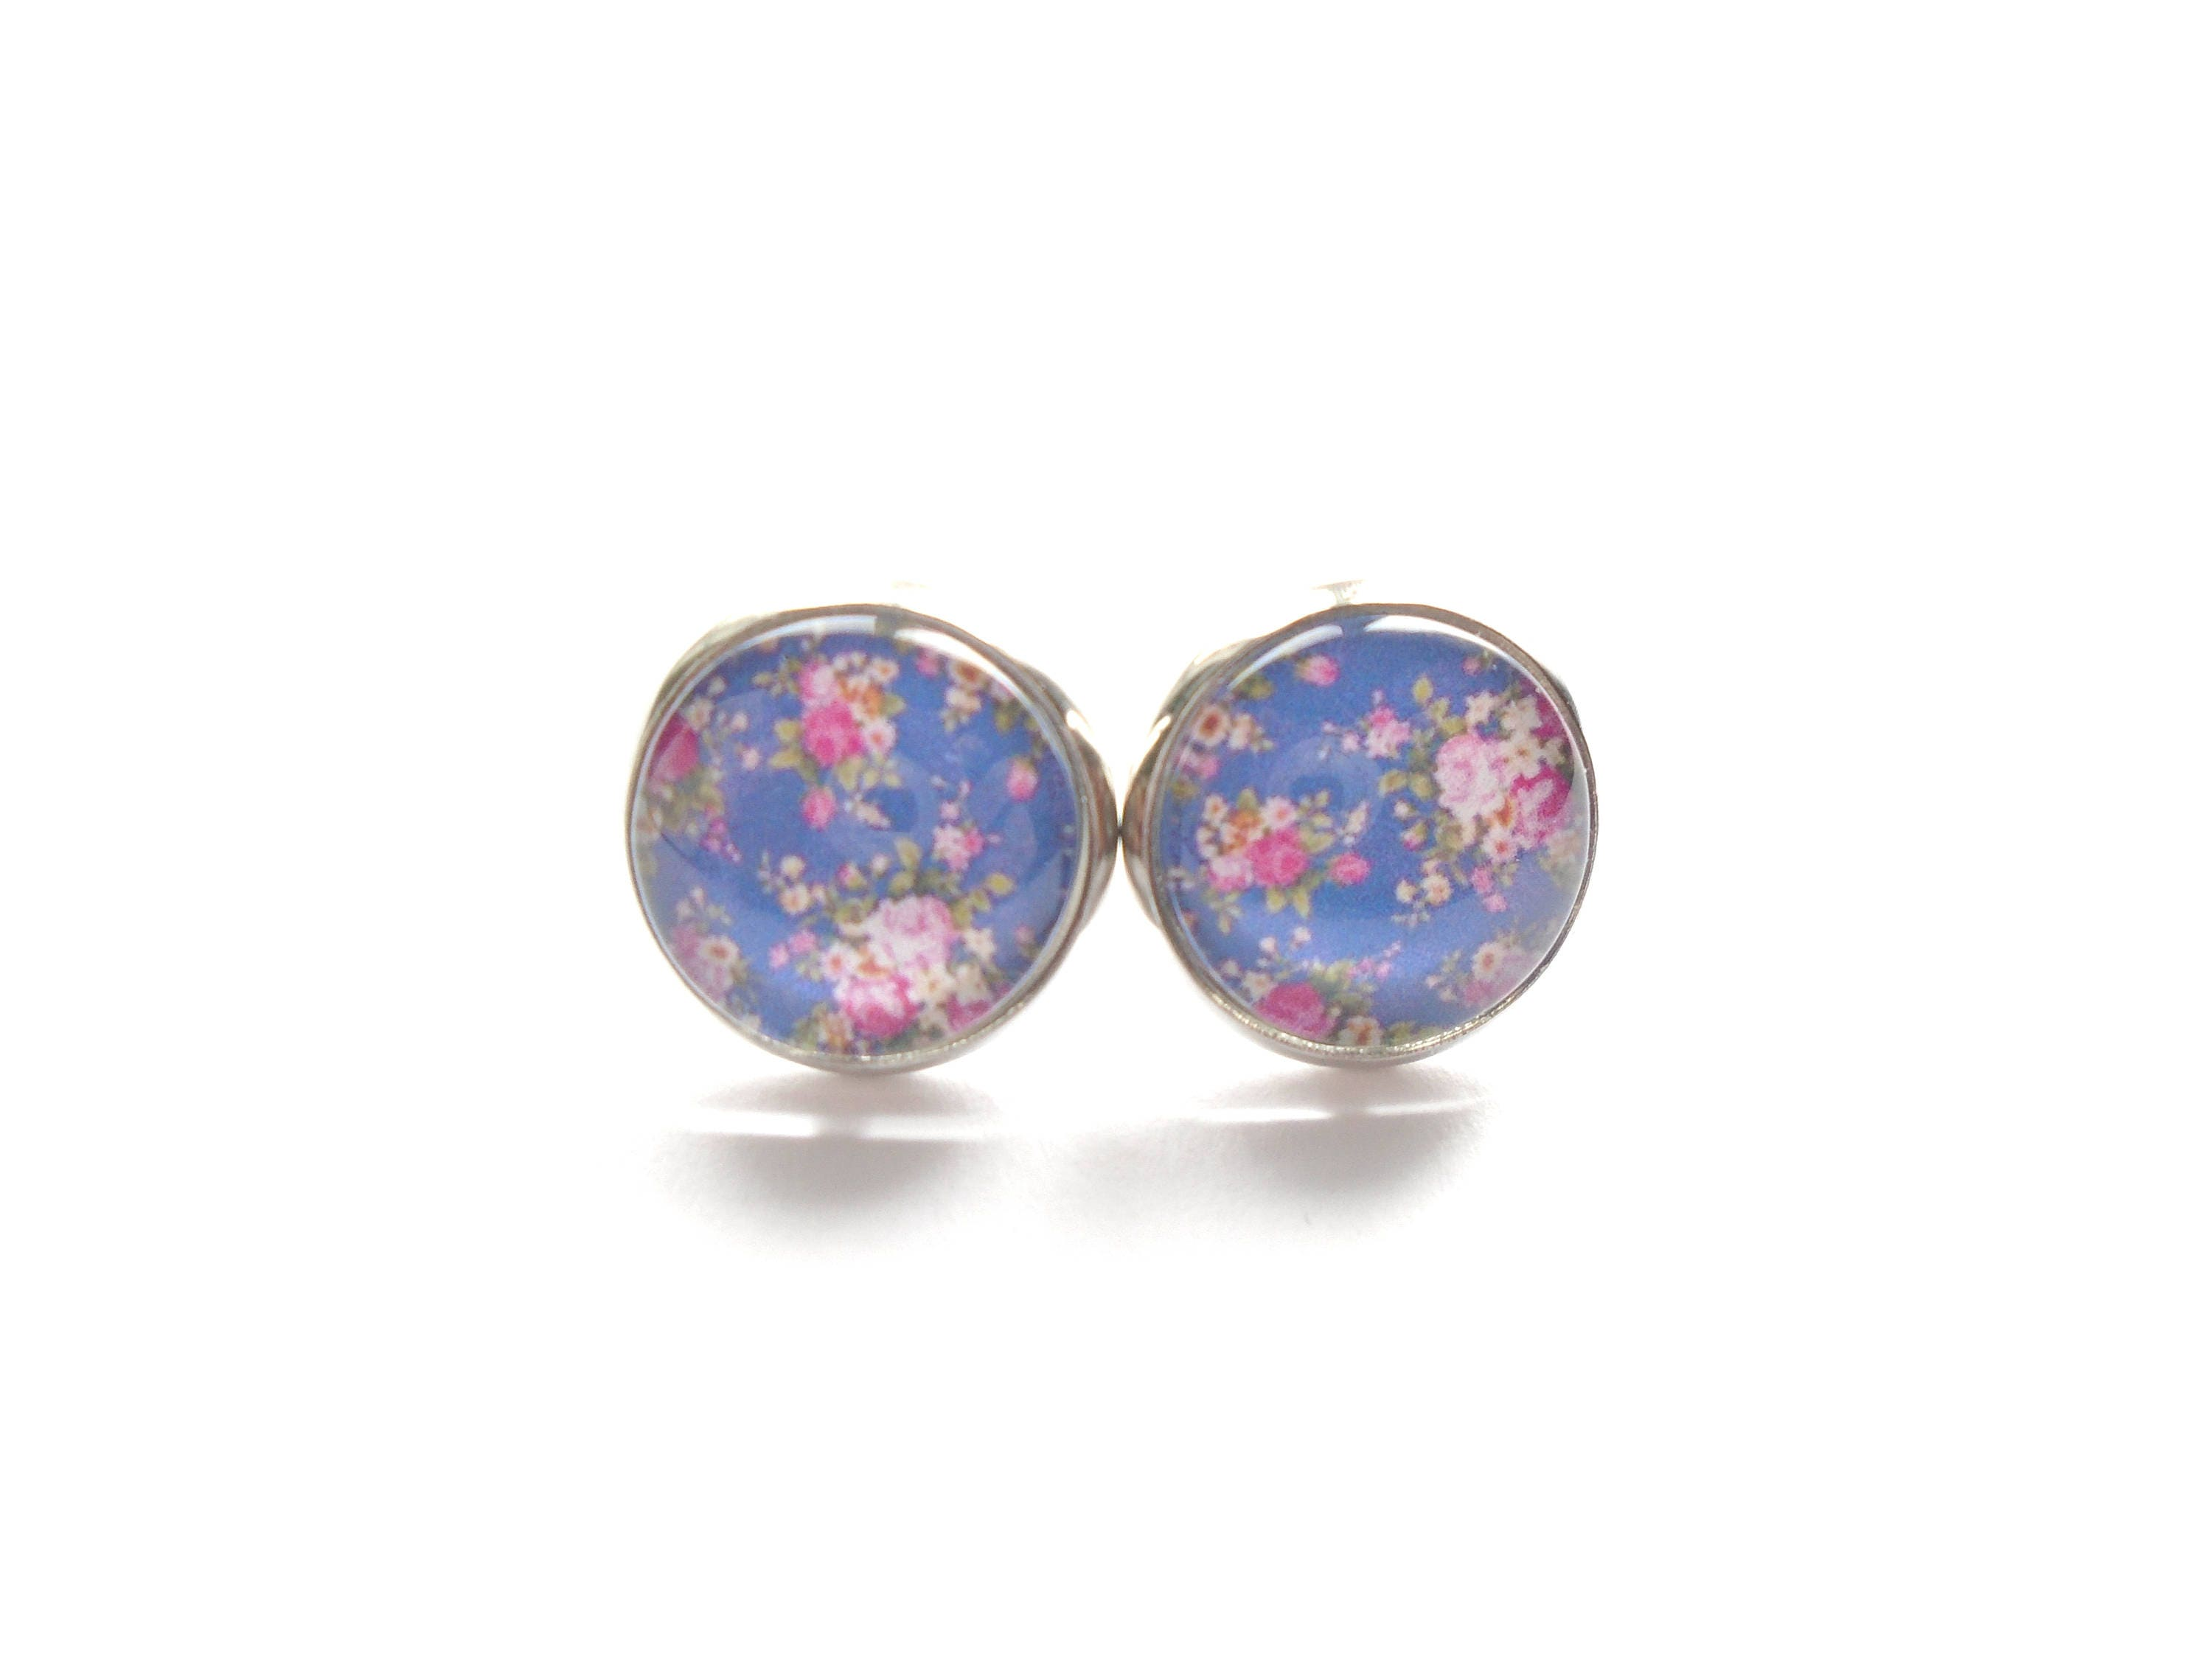 genuine natural opal fullxfull aaa il rainbow fire listing silver cabochon earrings stud studs